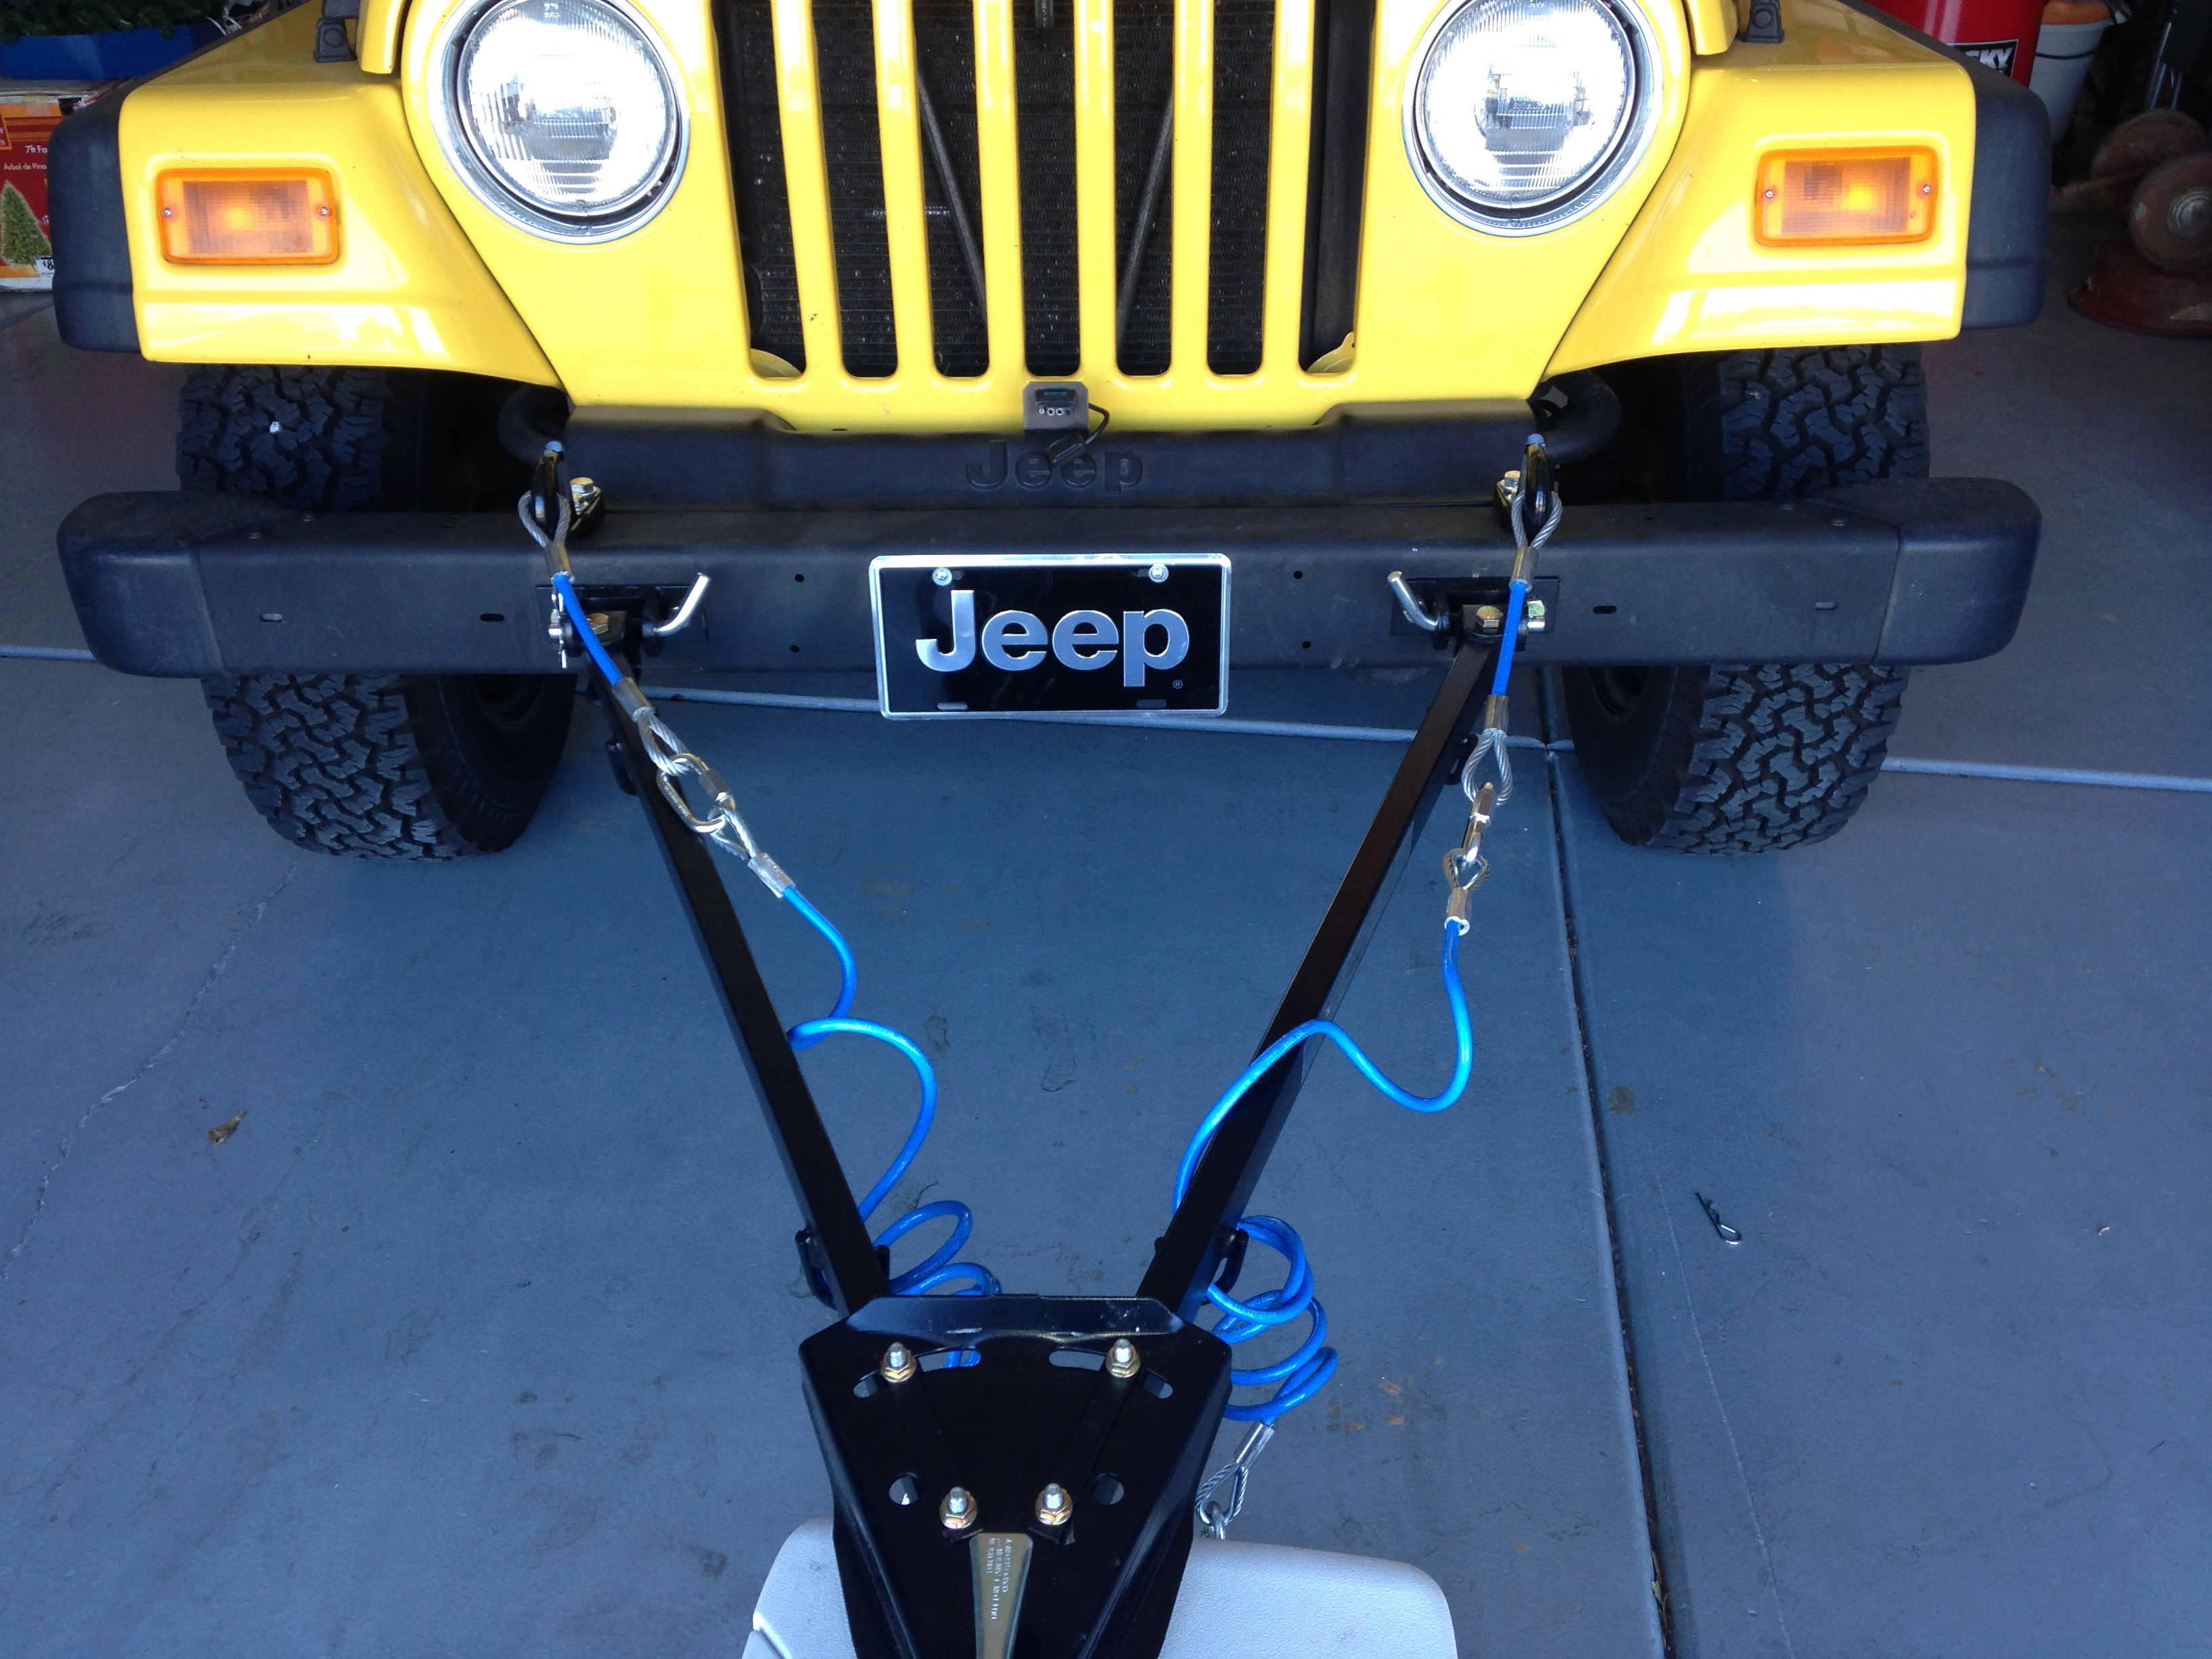 6 Easy Steps To Flat Tow A Jeep Wrangler Truck Cer Adventure. Tj Jeep Wrangler Flat Tow System Truck Cer Adventure. Wiring. Motorhome Towing Systems Diagrams At Scoala.co